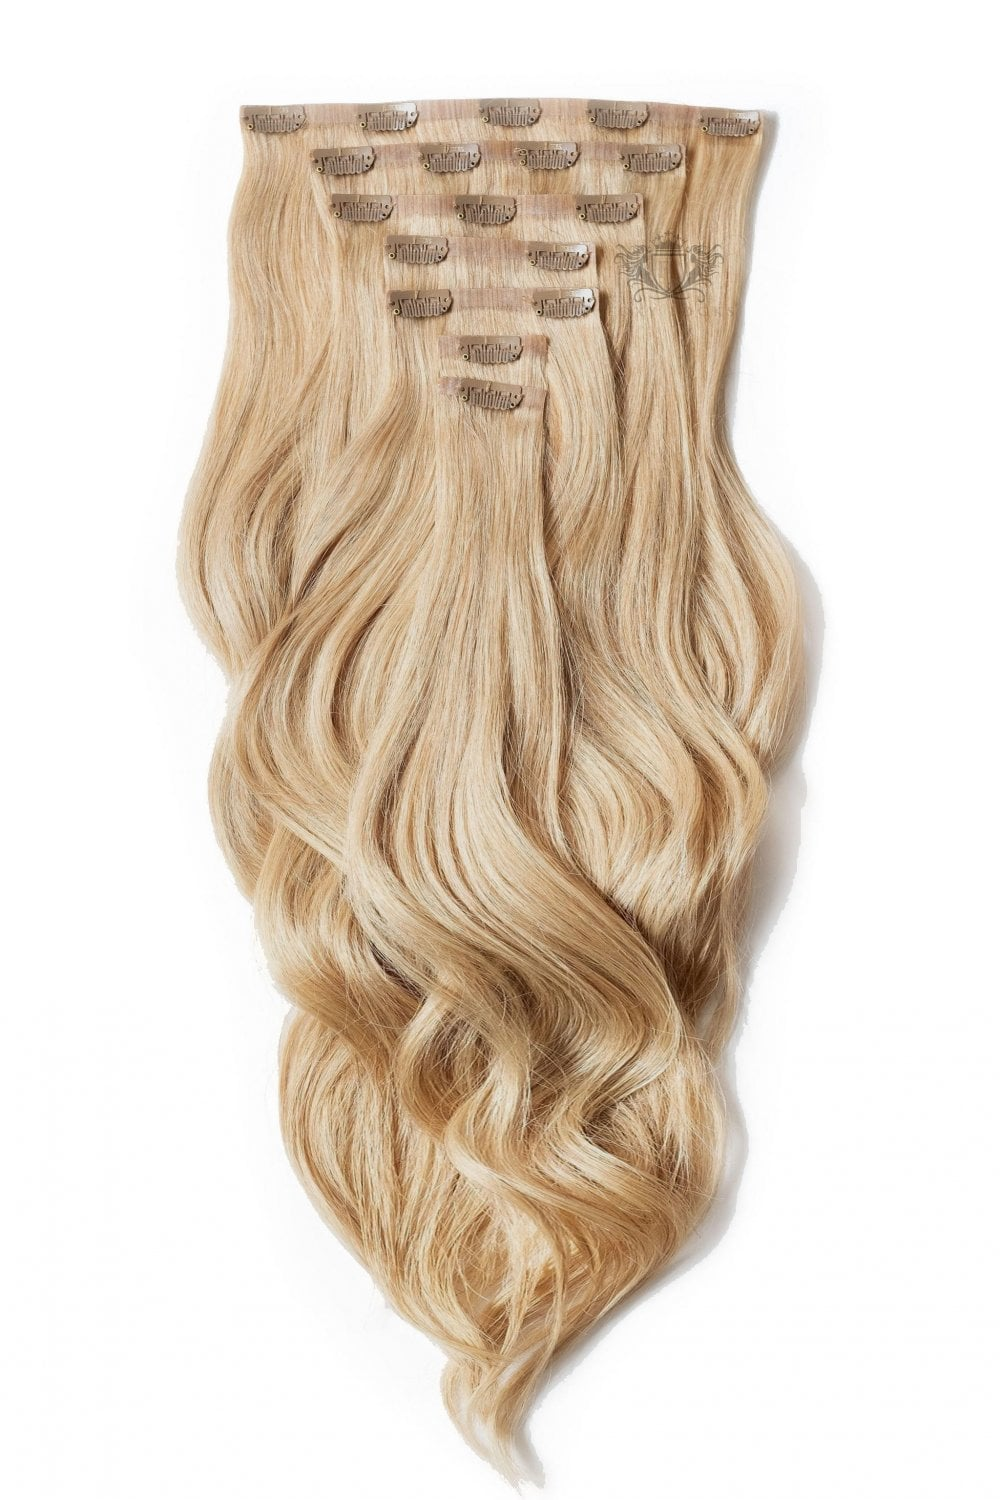 Caramel Superior Seamless 22 Quot Clip In Human Hair